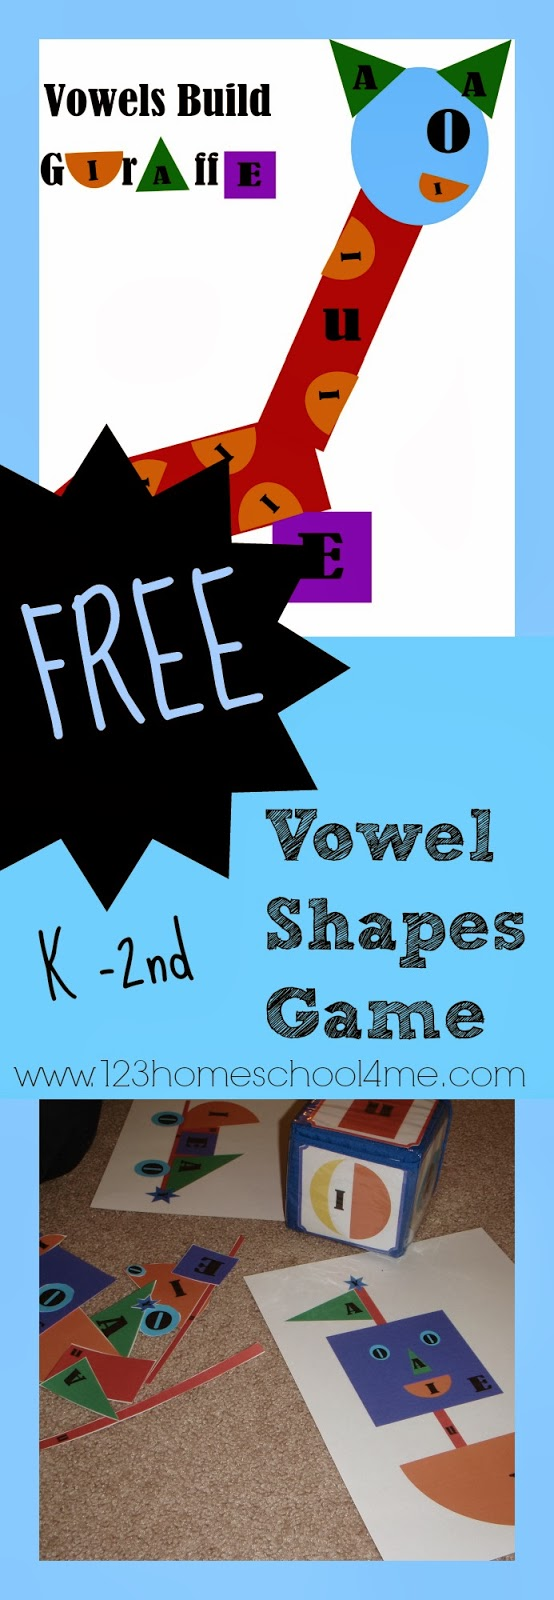 FREE Vowel Shapes Game for Kindergarten, 1st grade, and 2nd grade homeschoolers language arts